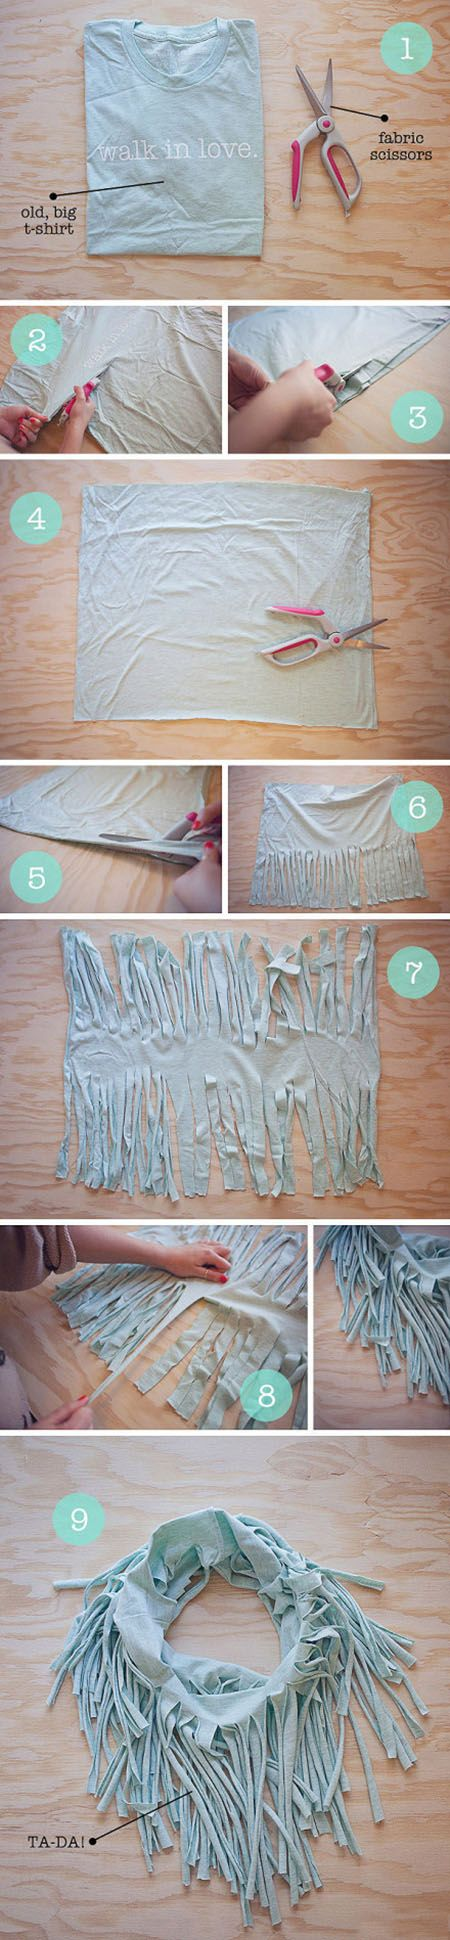 Cool Craft Idea | Click to see More DIY & Crafts Tutorials on Our Site.